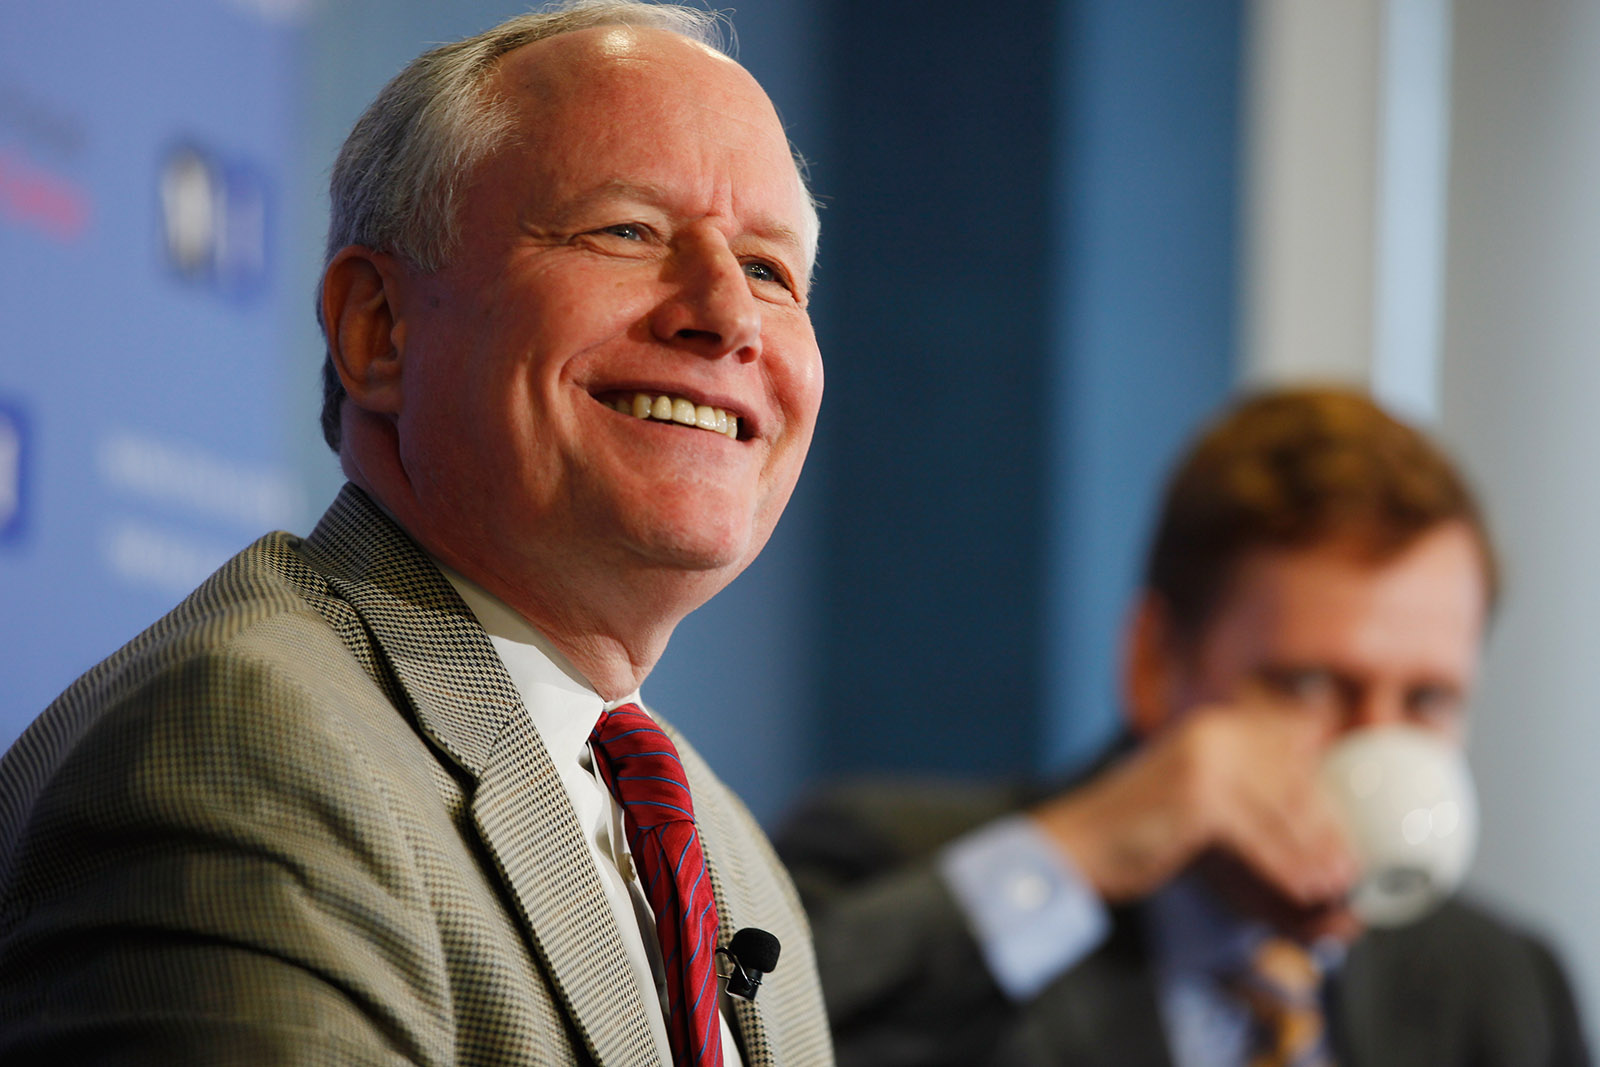 The Weekly Standard's editor, William Kristol, in a discussion at the National Press Club with Peter Thiel, Washington, D.C., October 3, 2011